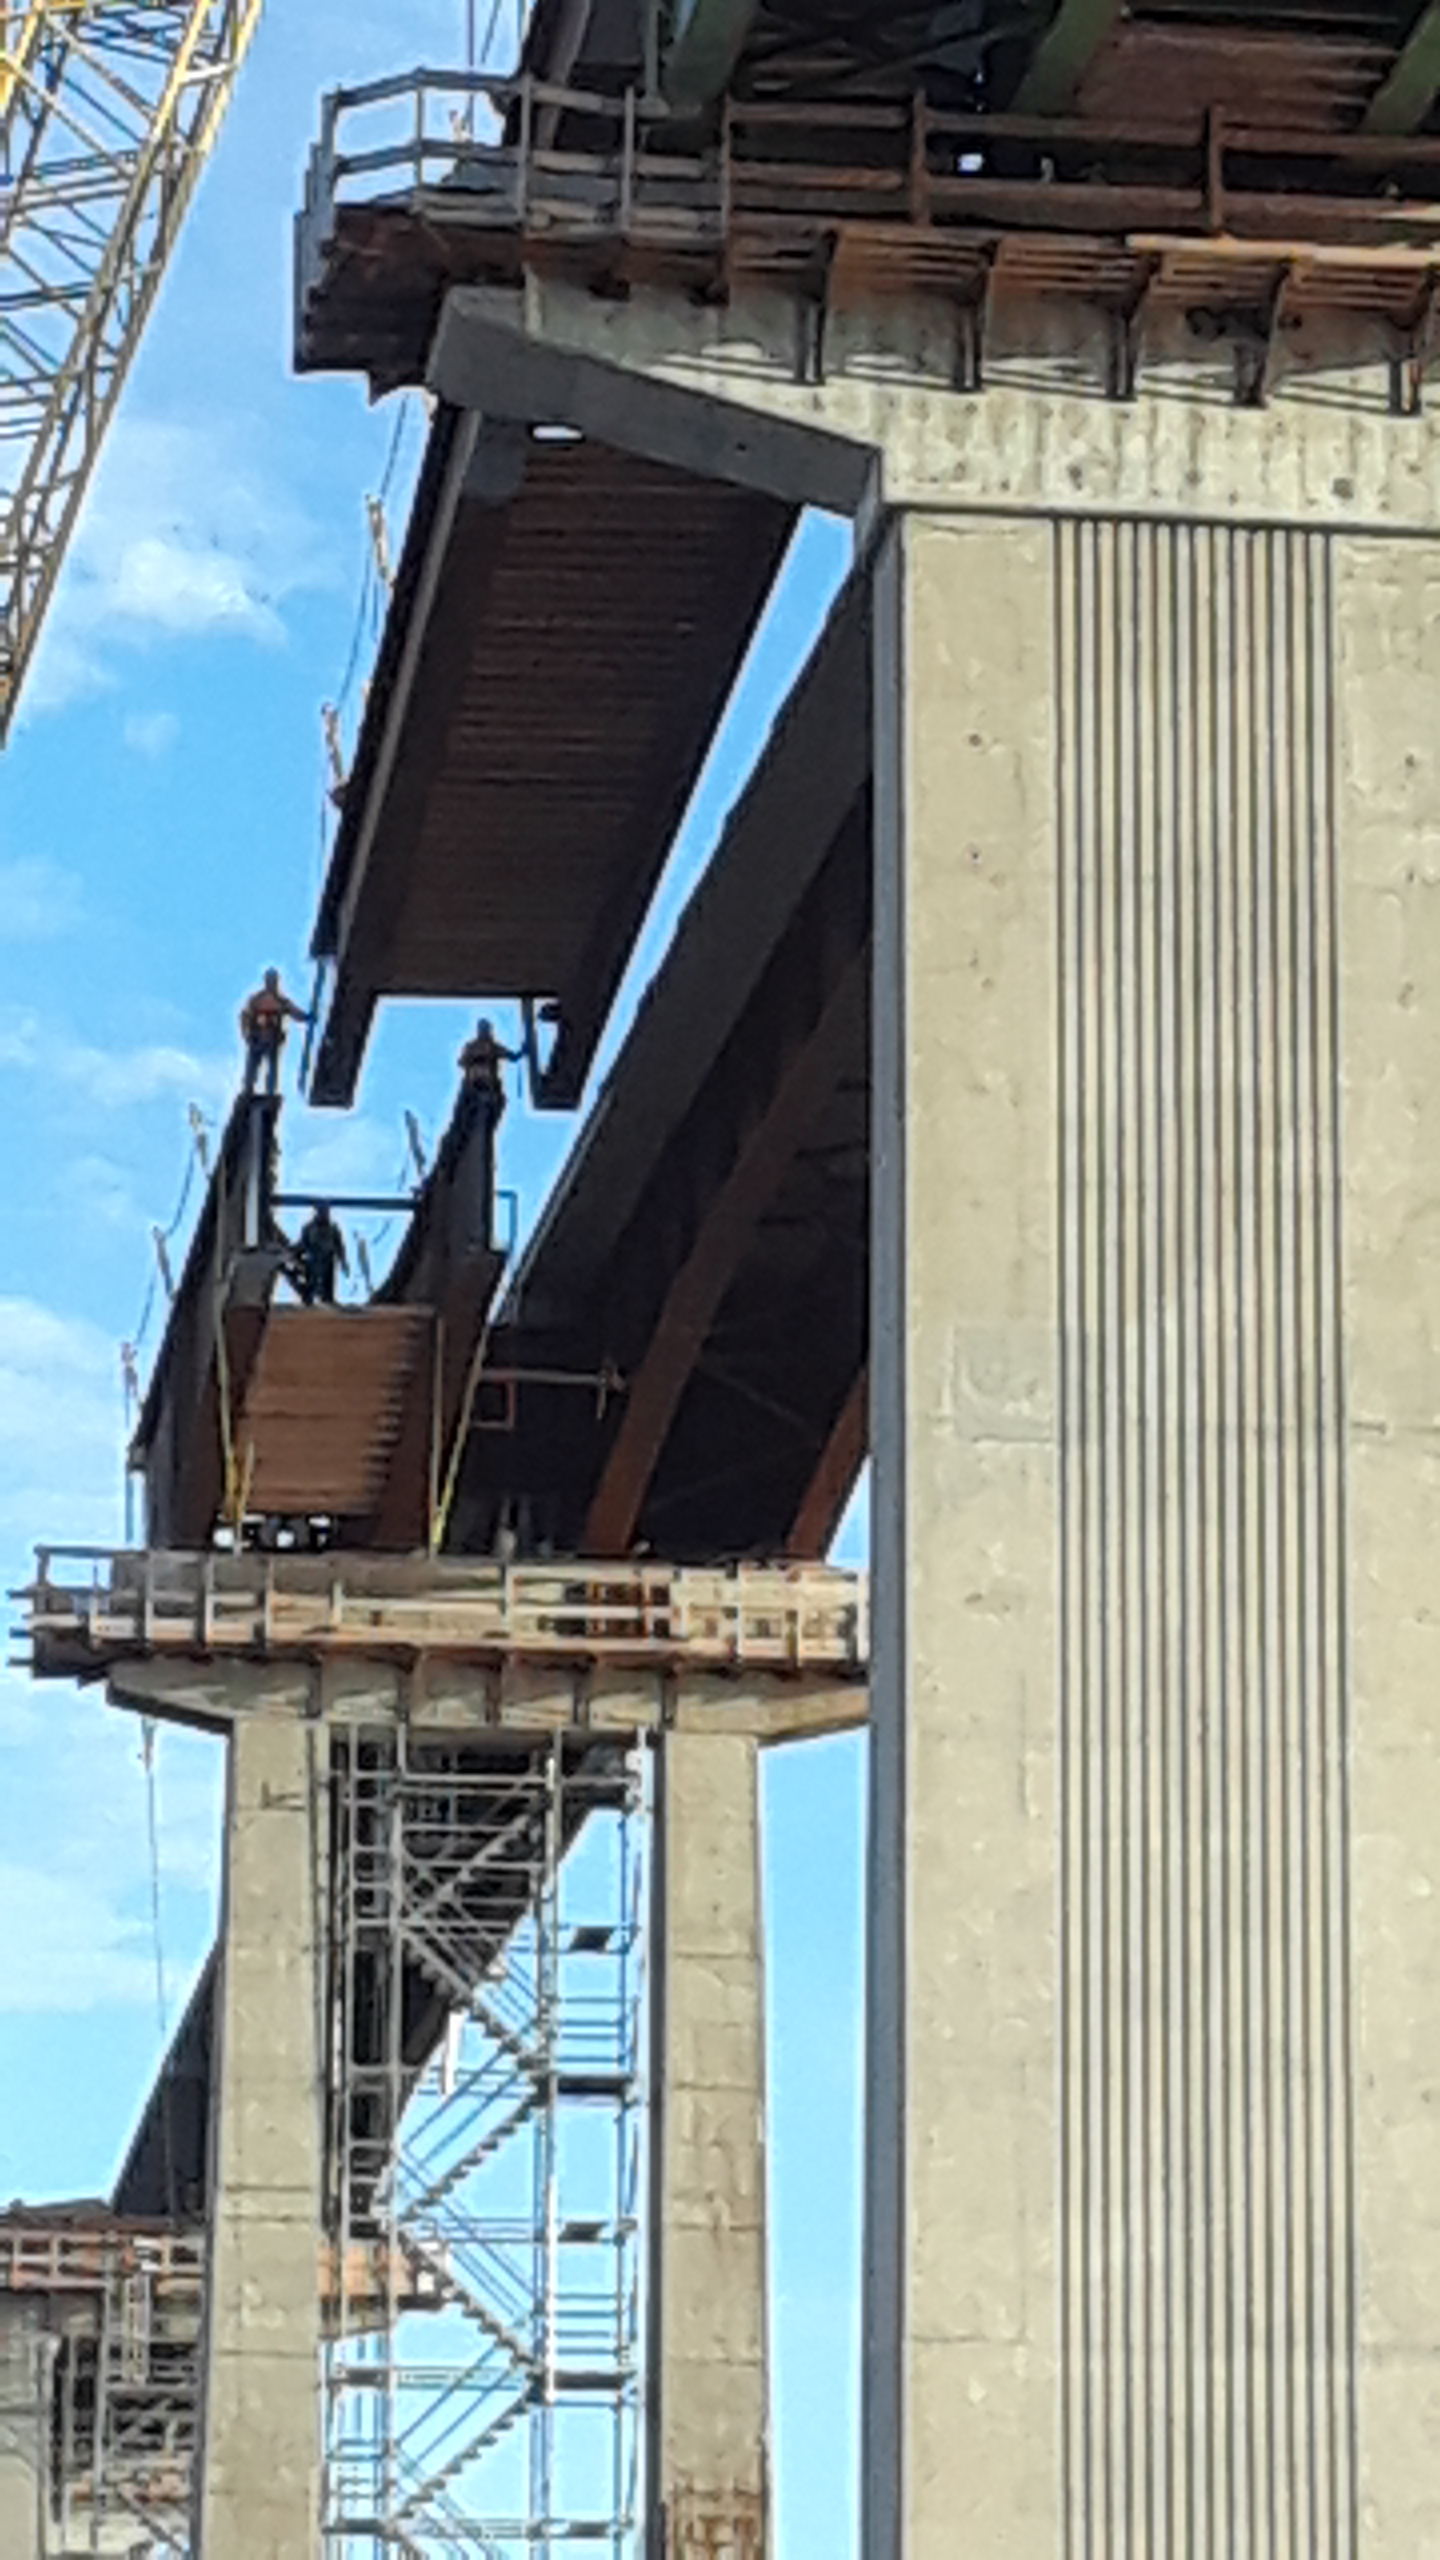 Approach girder being lowered into place / view from below